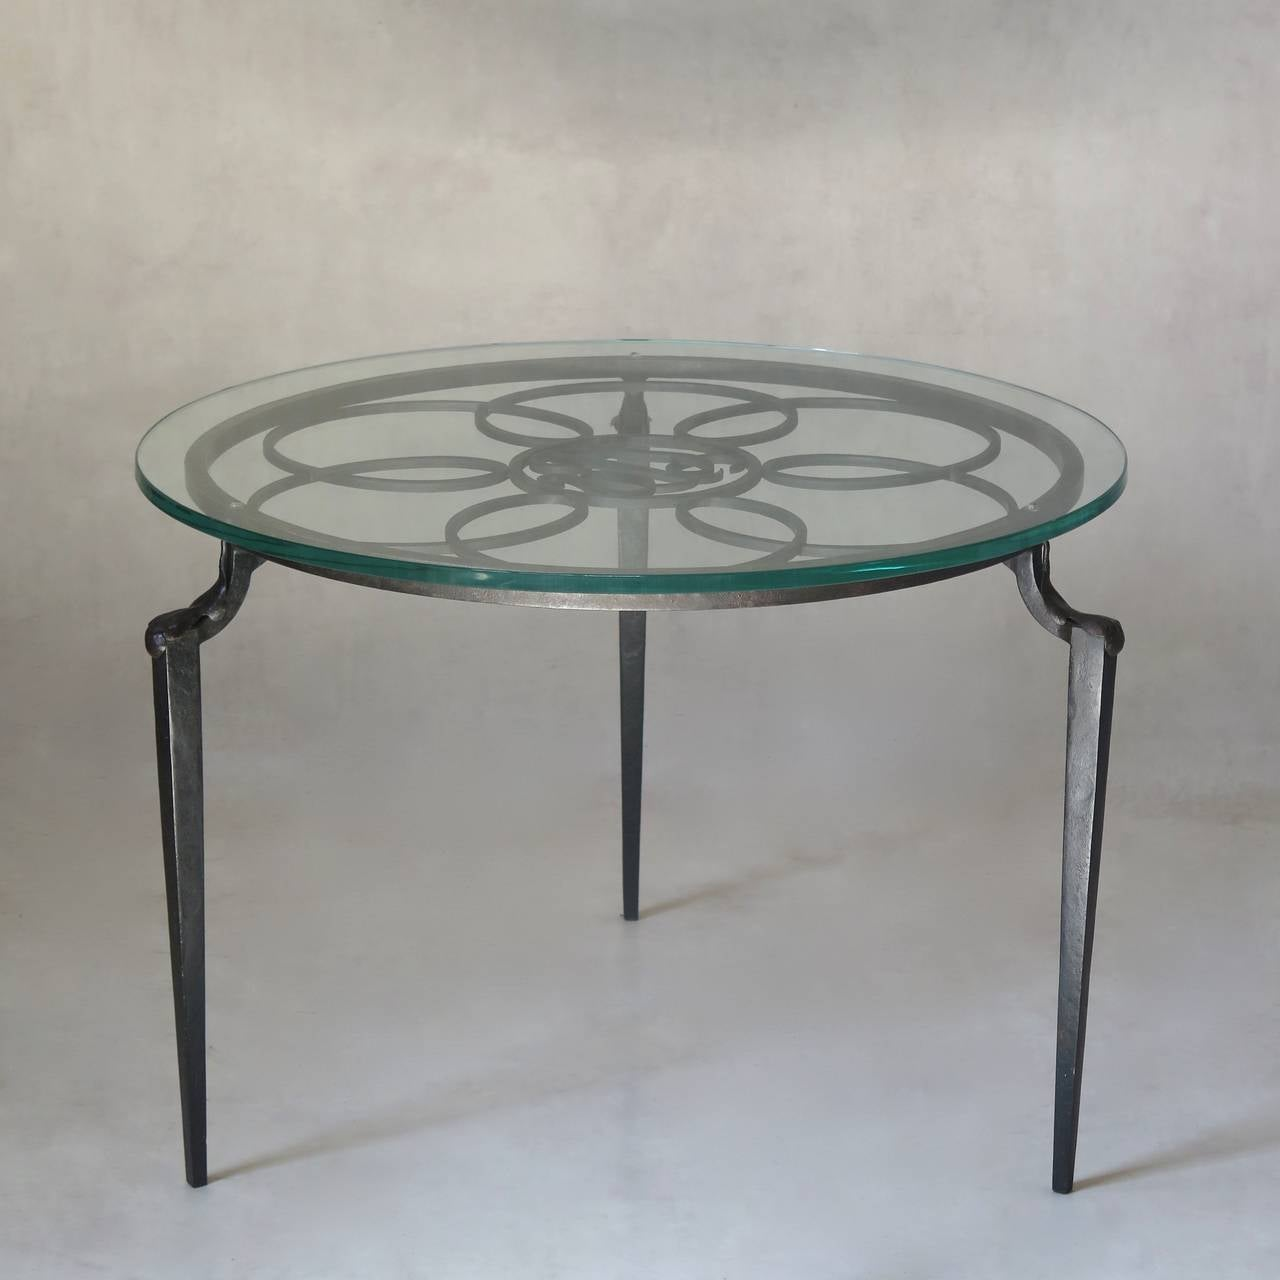 French Monogrammed Wrought Iron Coffee Table With Glass Top Circa 1930s At 1stdibs